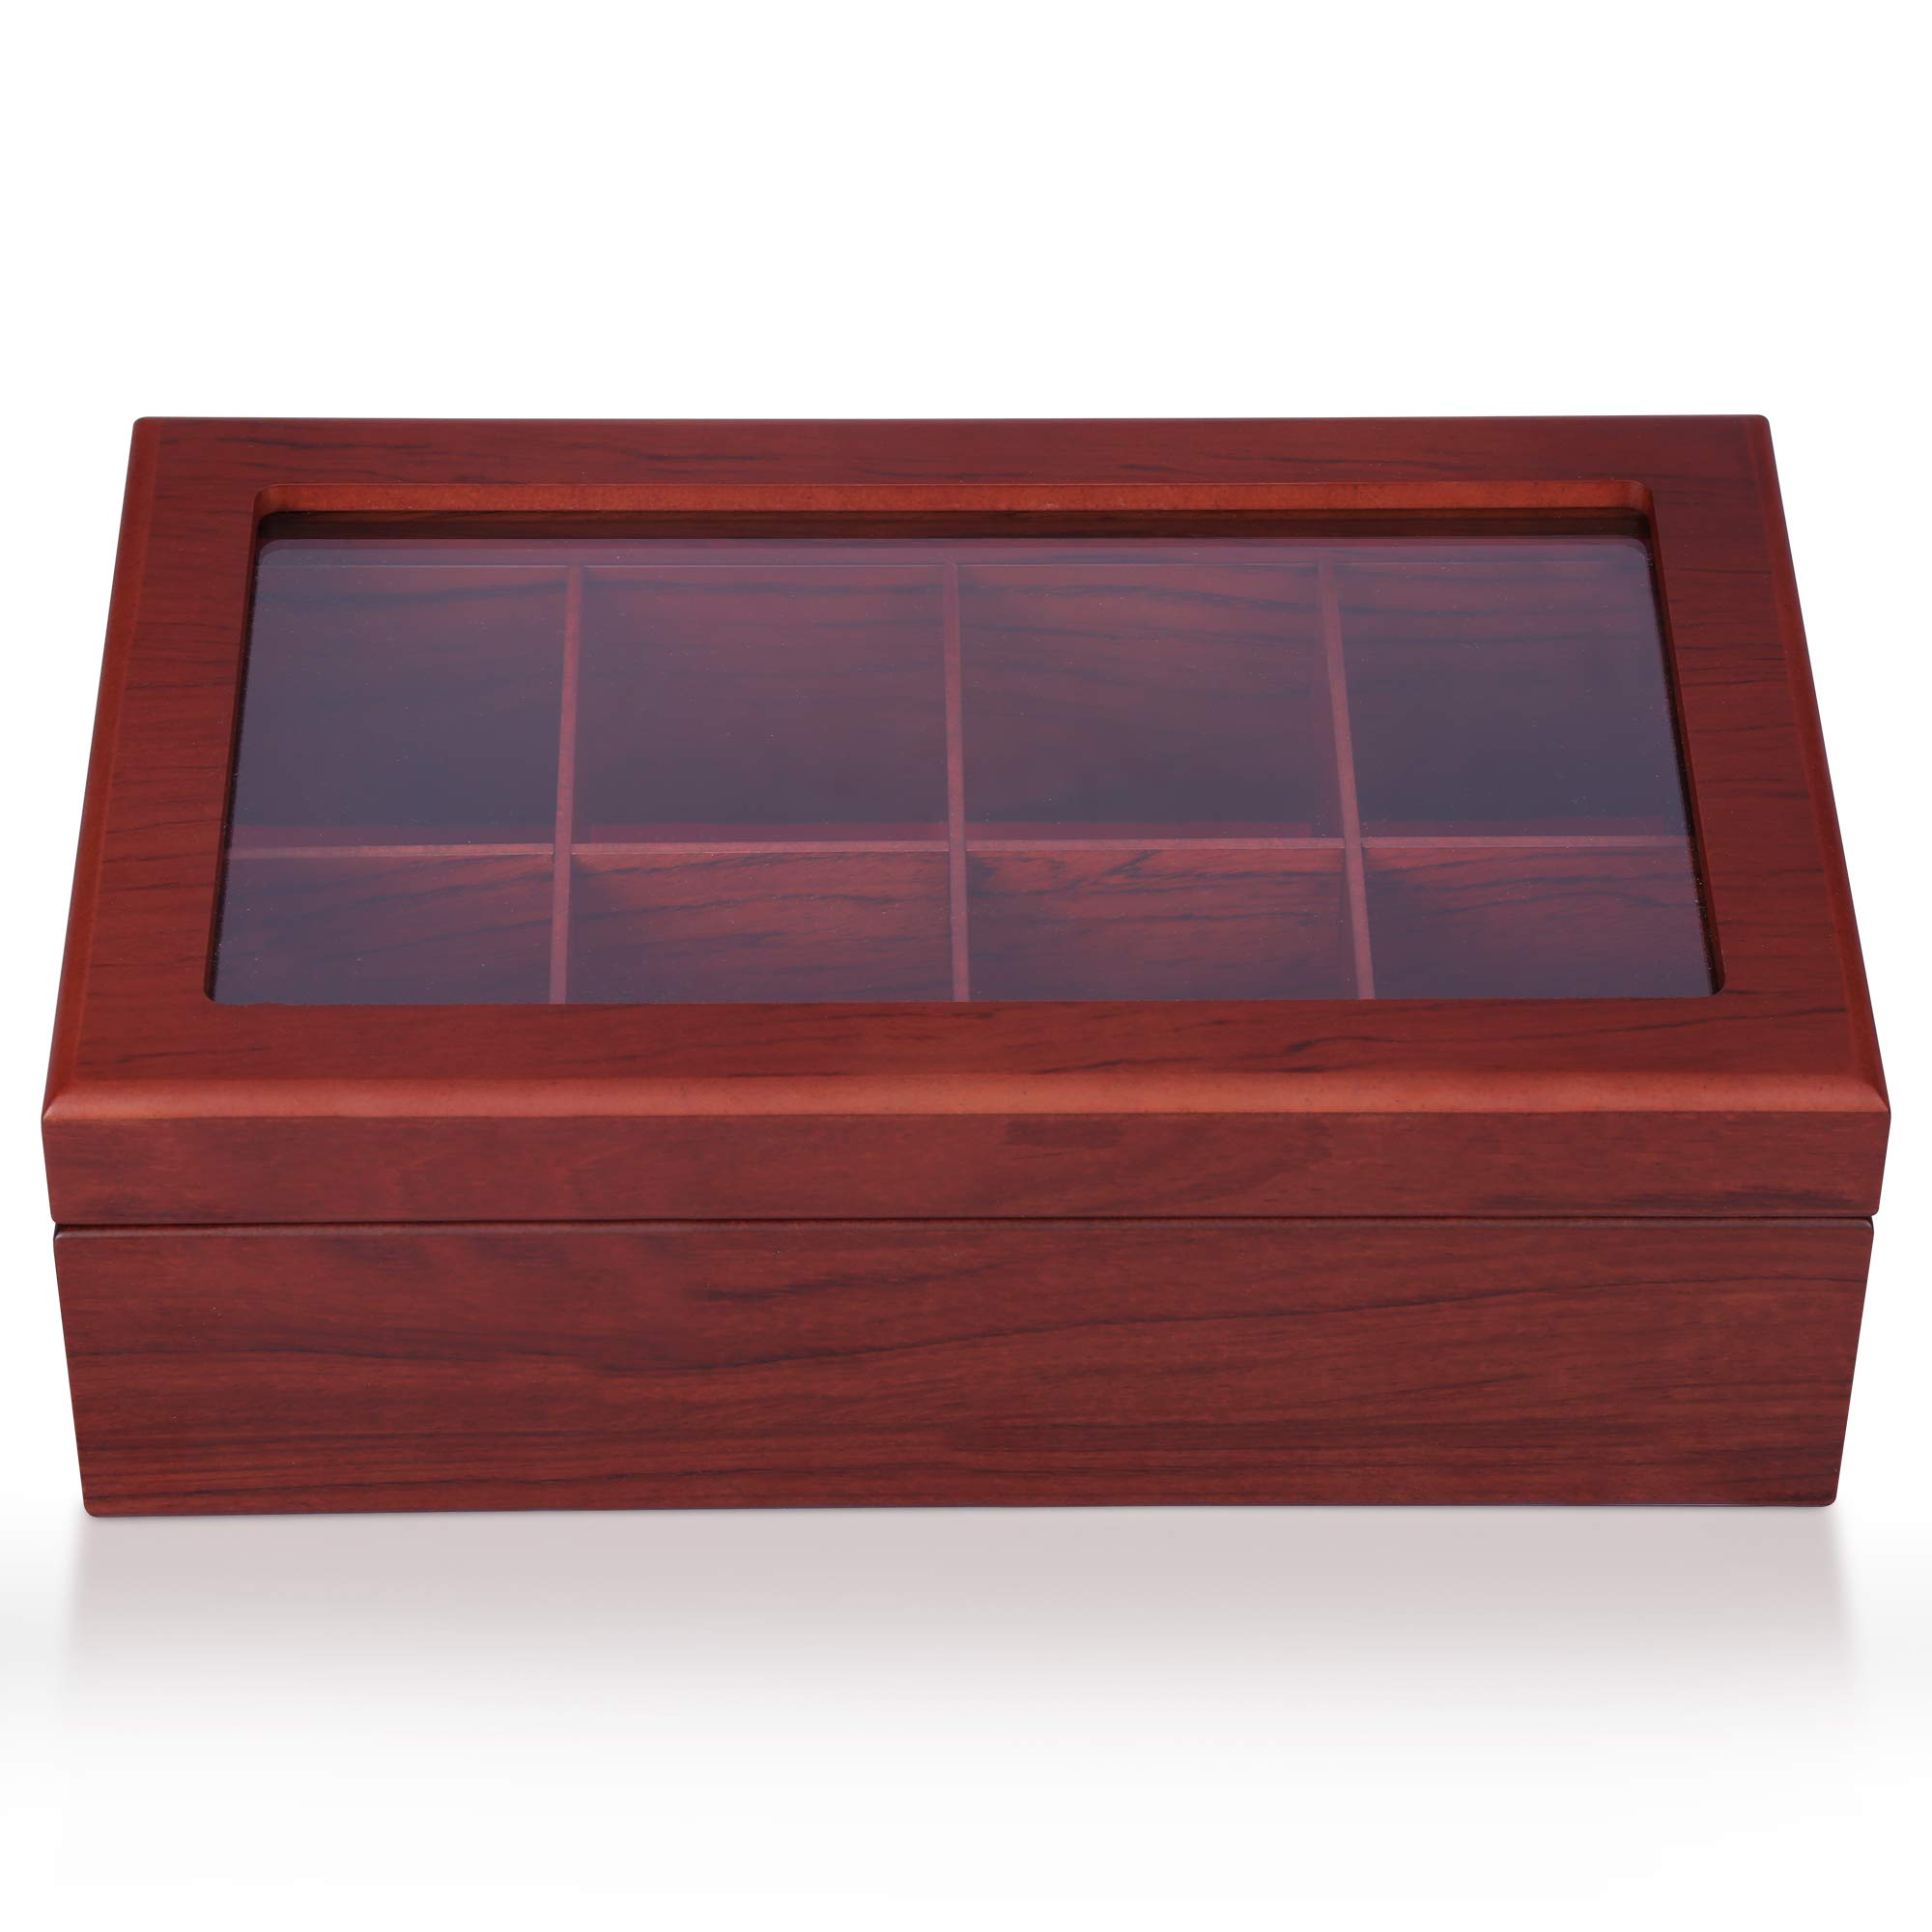 Apace Living Tea Box - Luxury Wooden Tea Storage Chest from The Premier Collection - 8 Adjustable Compartment Tea Bags Organizer Container - Elegantly Handmade w/Scratch Resistant Window by Apace Living